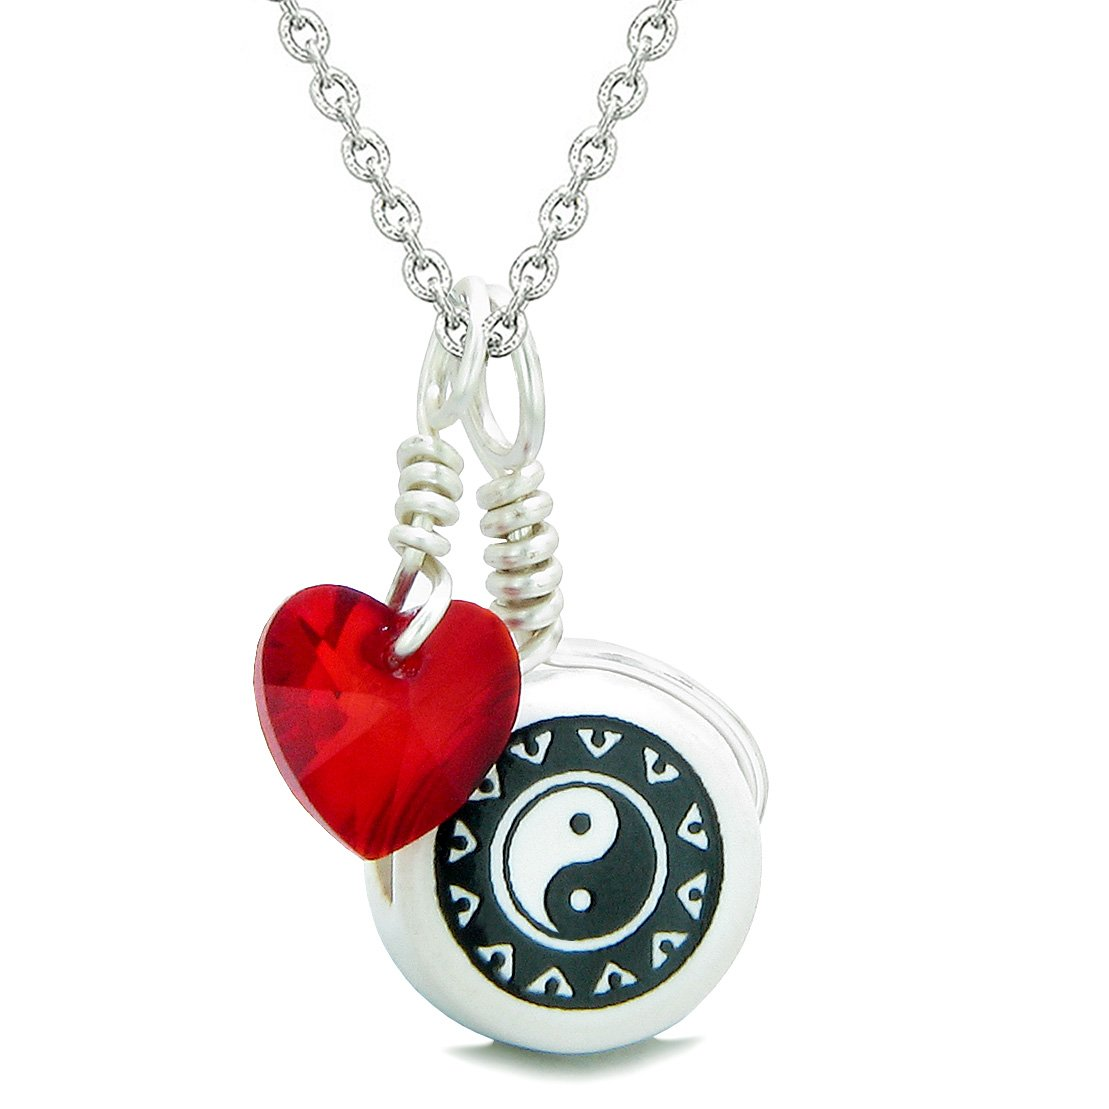 Handcrafted Cute Ceramic Lucky Charm Black White Yin Yang Red Heart Amulet Pendant 18 Inch Necklace